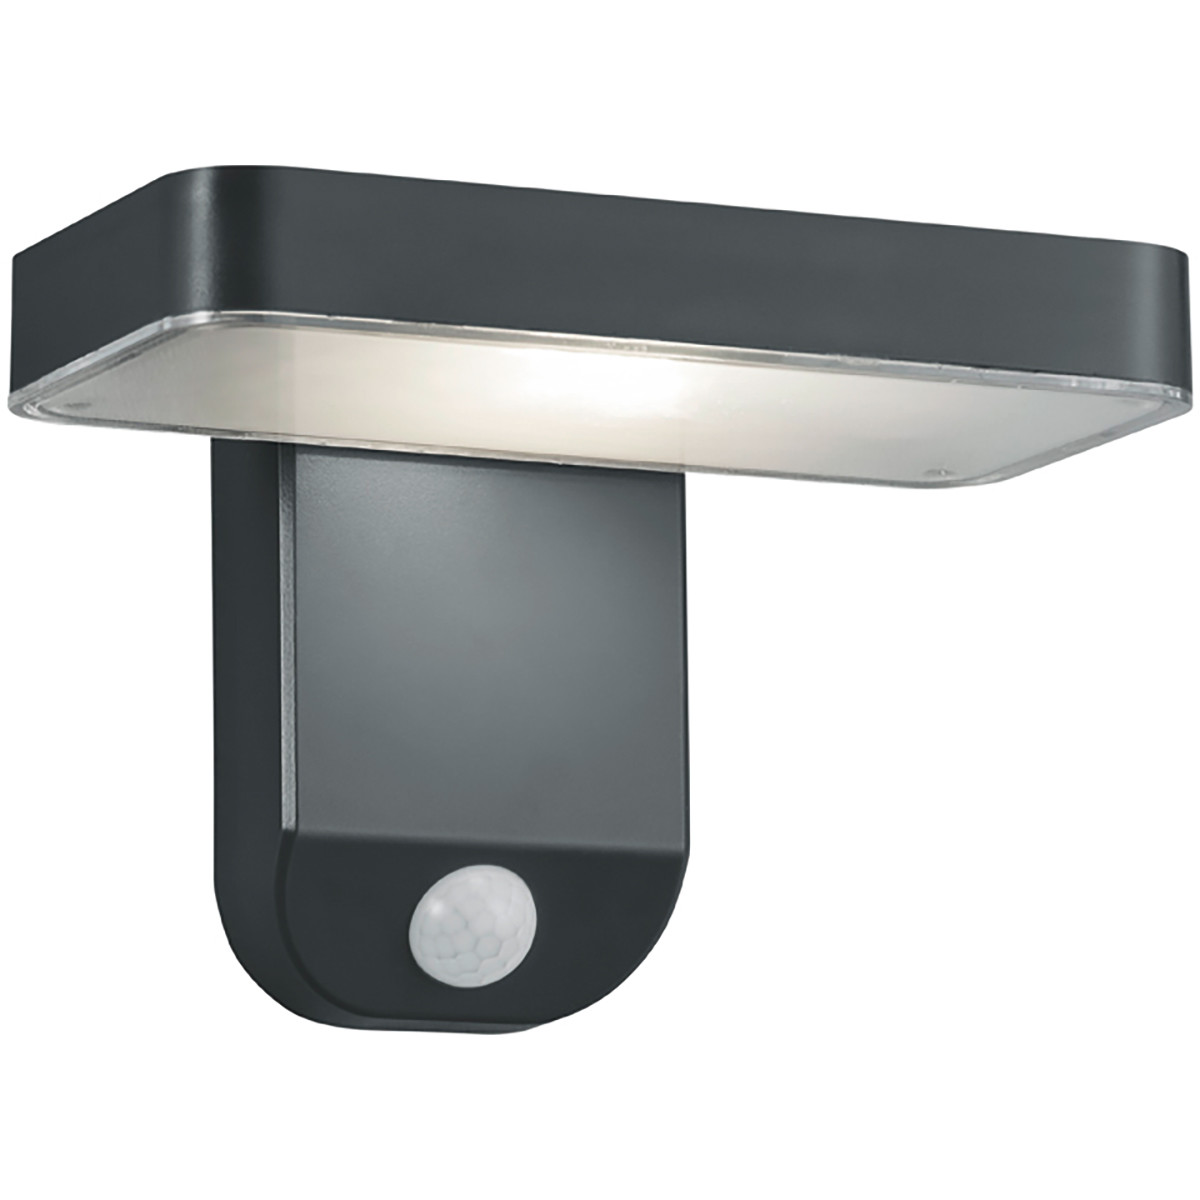 LED Solar Tuinverlichting - Wandlamp - Trion Escarino - Zonne-energie - Bewegingssensor - 4W - Mat Z